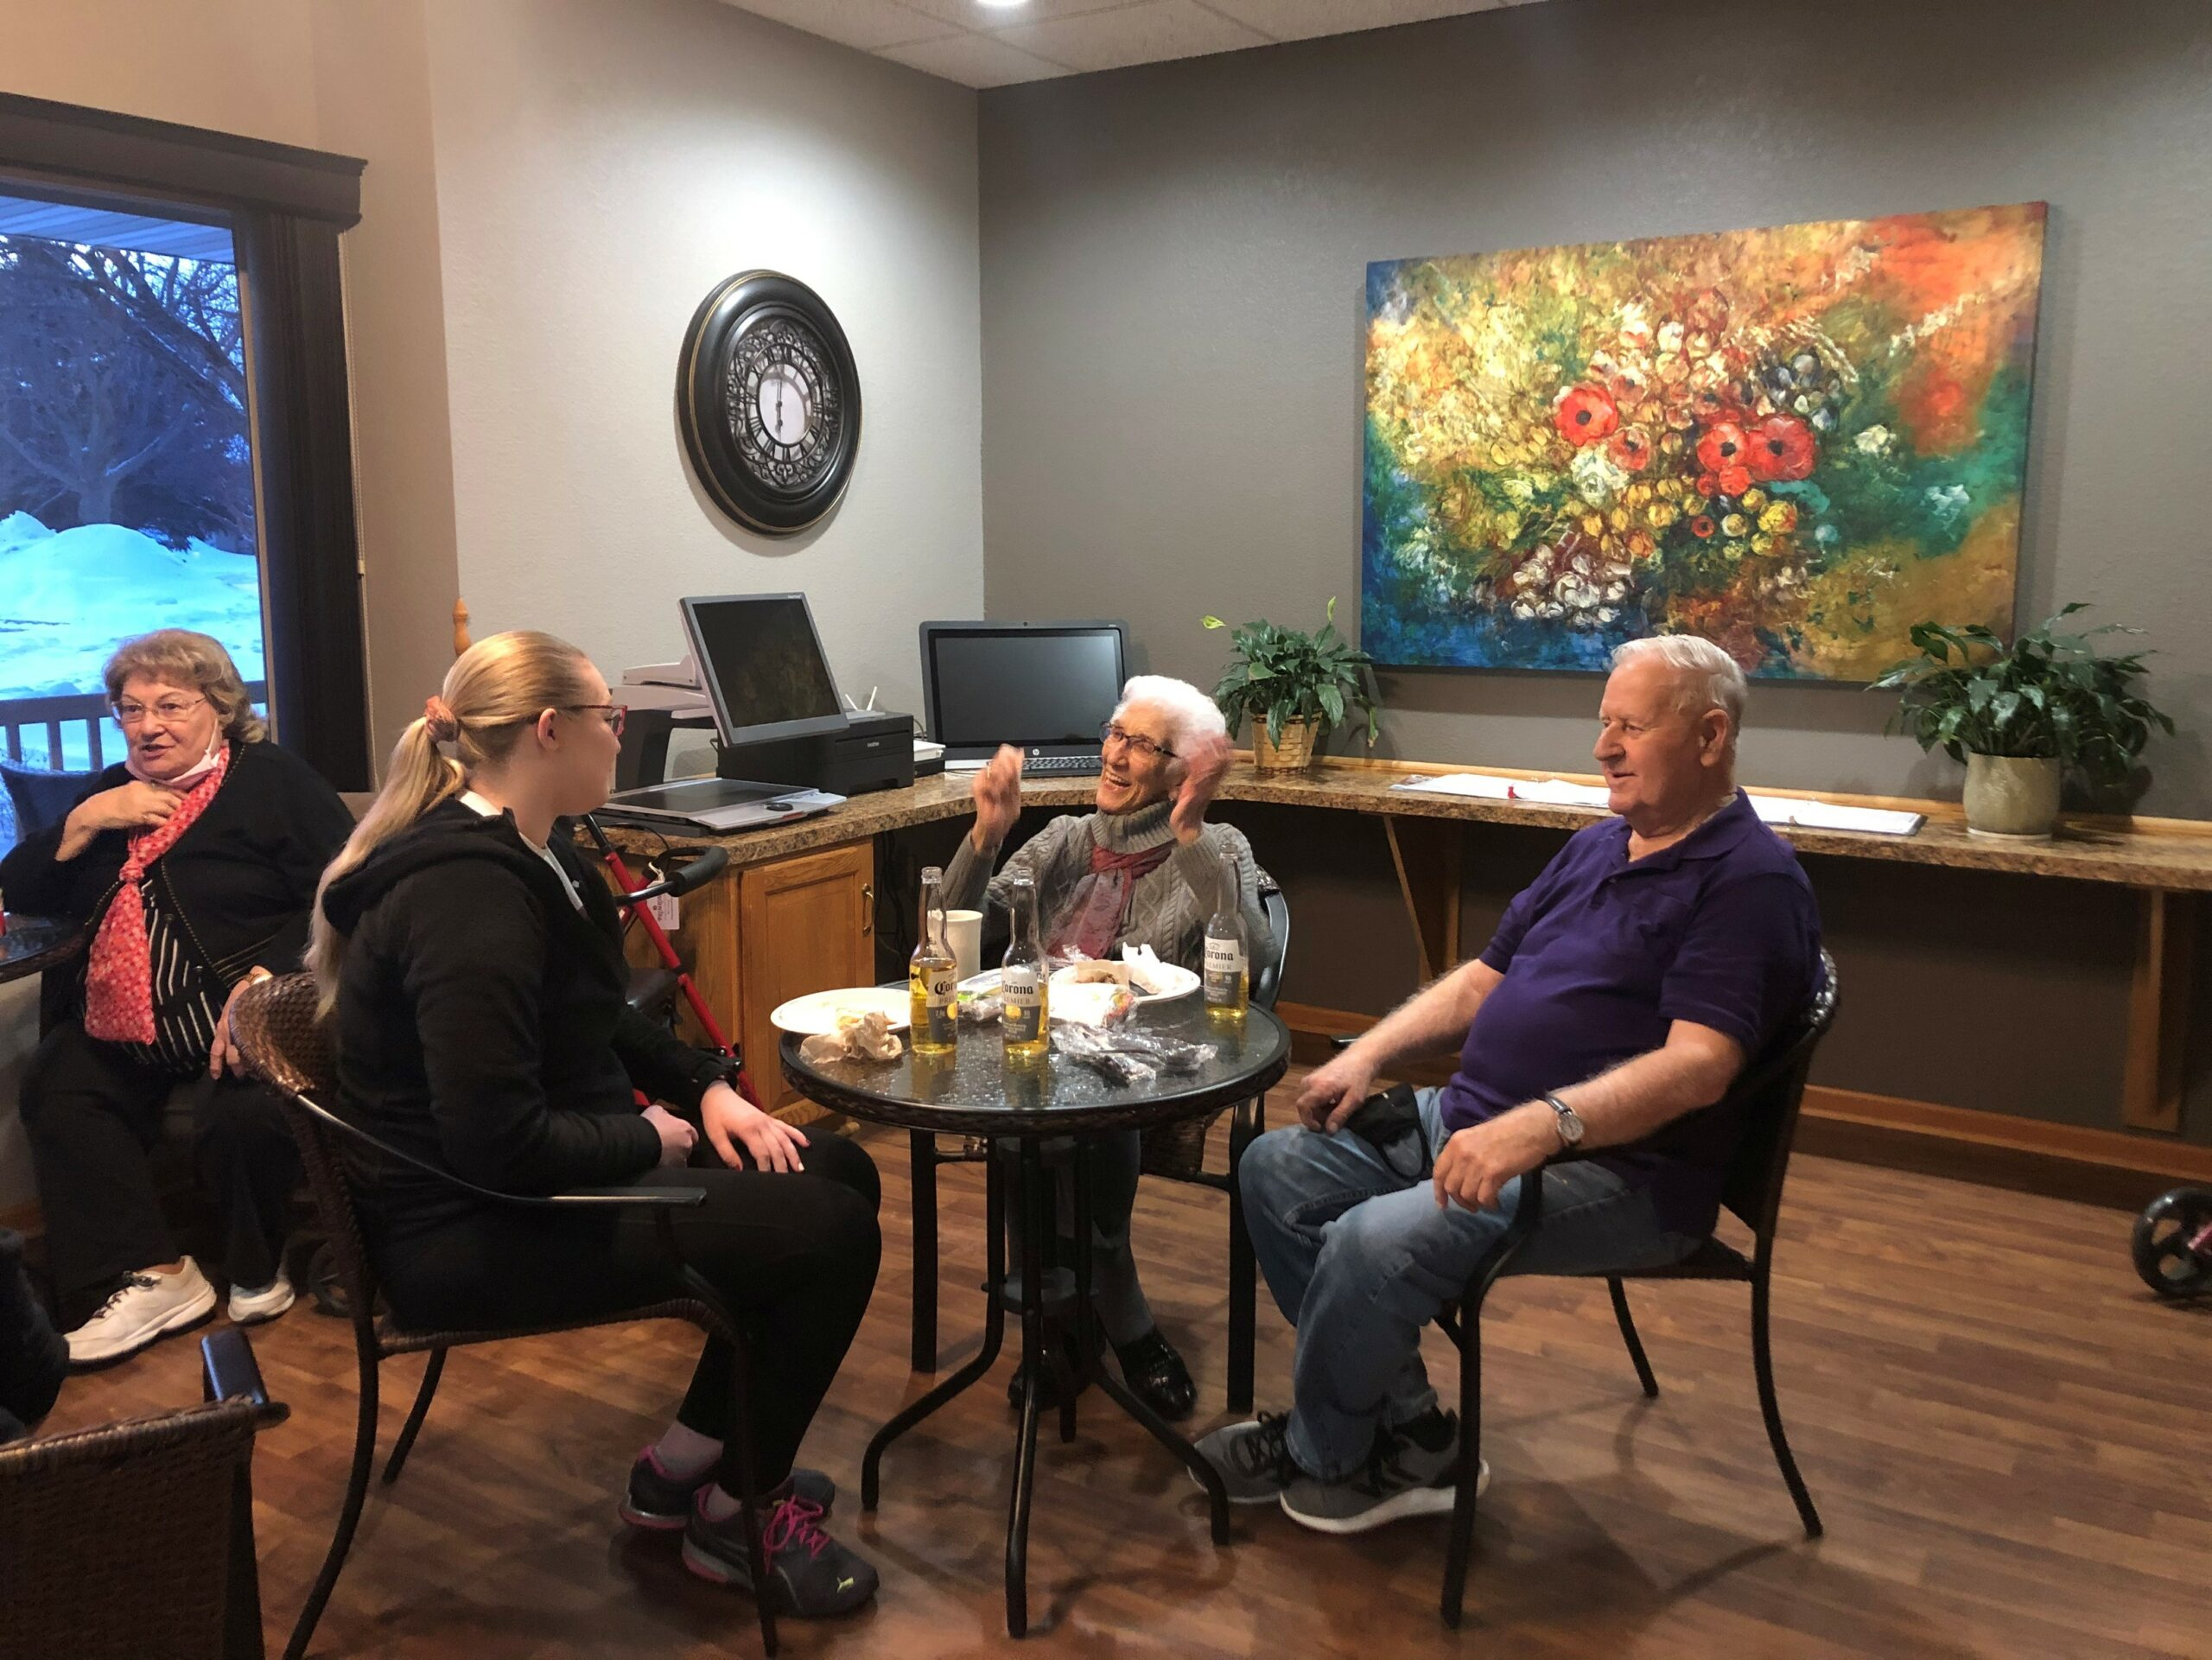 Residents & staff spent time learning about each other over dinner & treats to